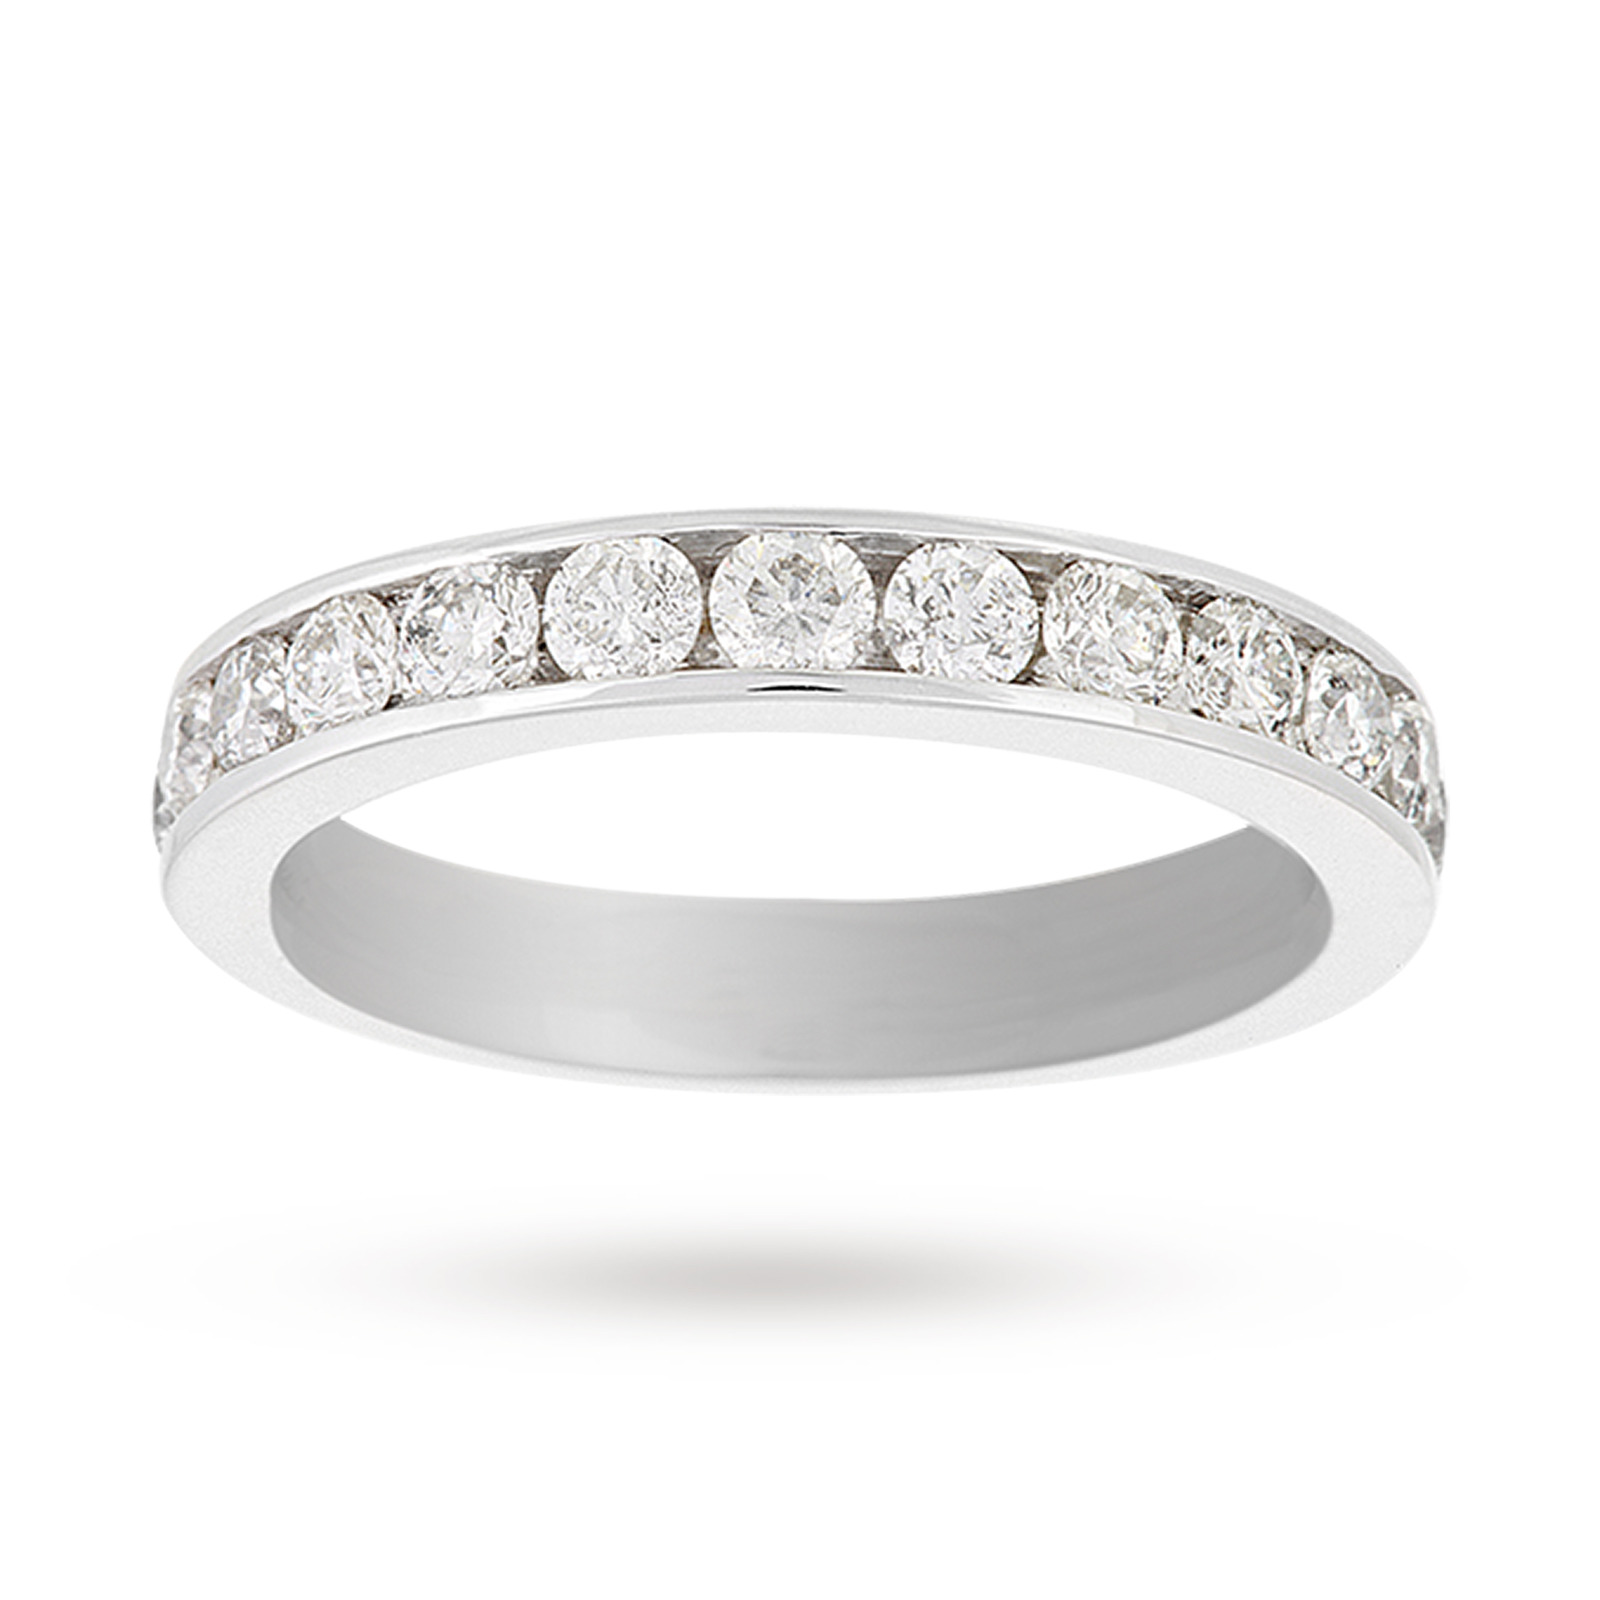 Platinum 1.00 Carat Eternity Ring - Ring Size K